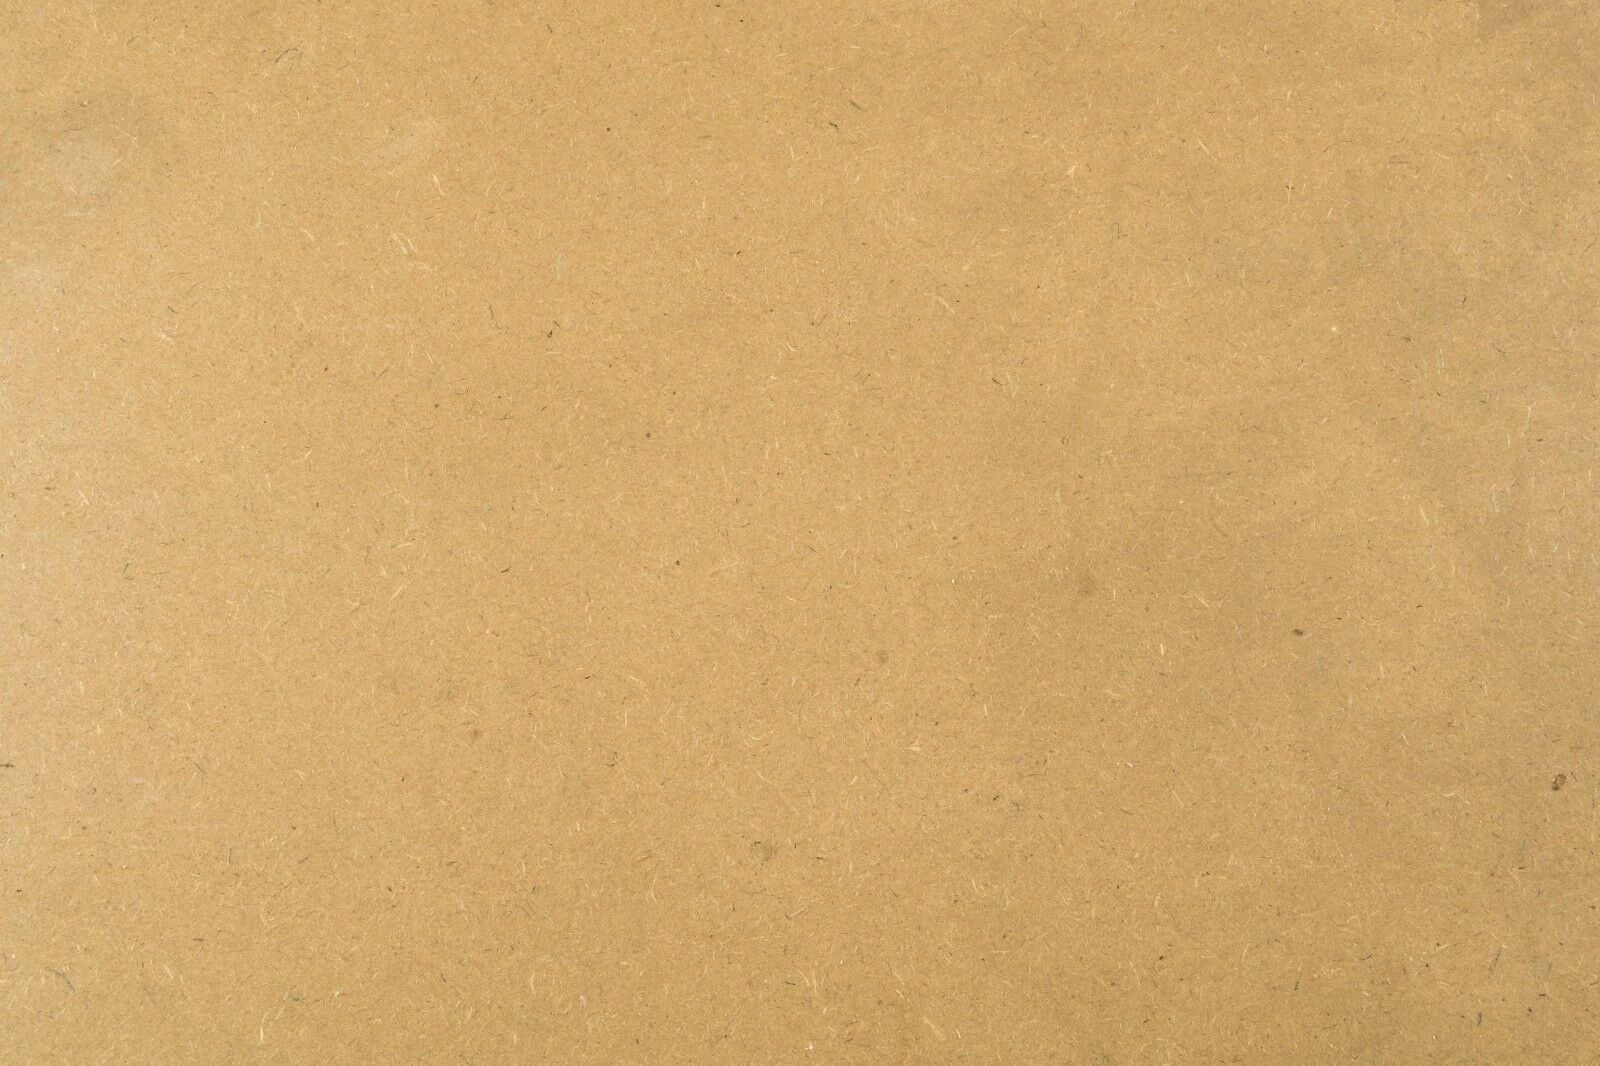 Mdf Medium Density Fibreboard Mdf Board Mdf Sheets Large